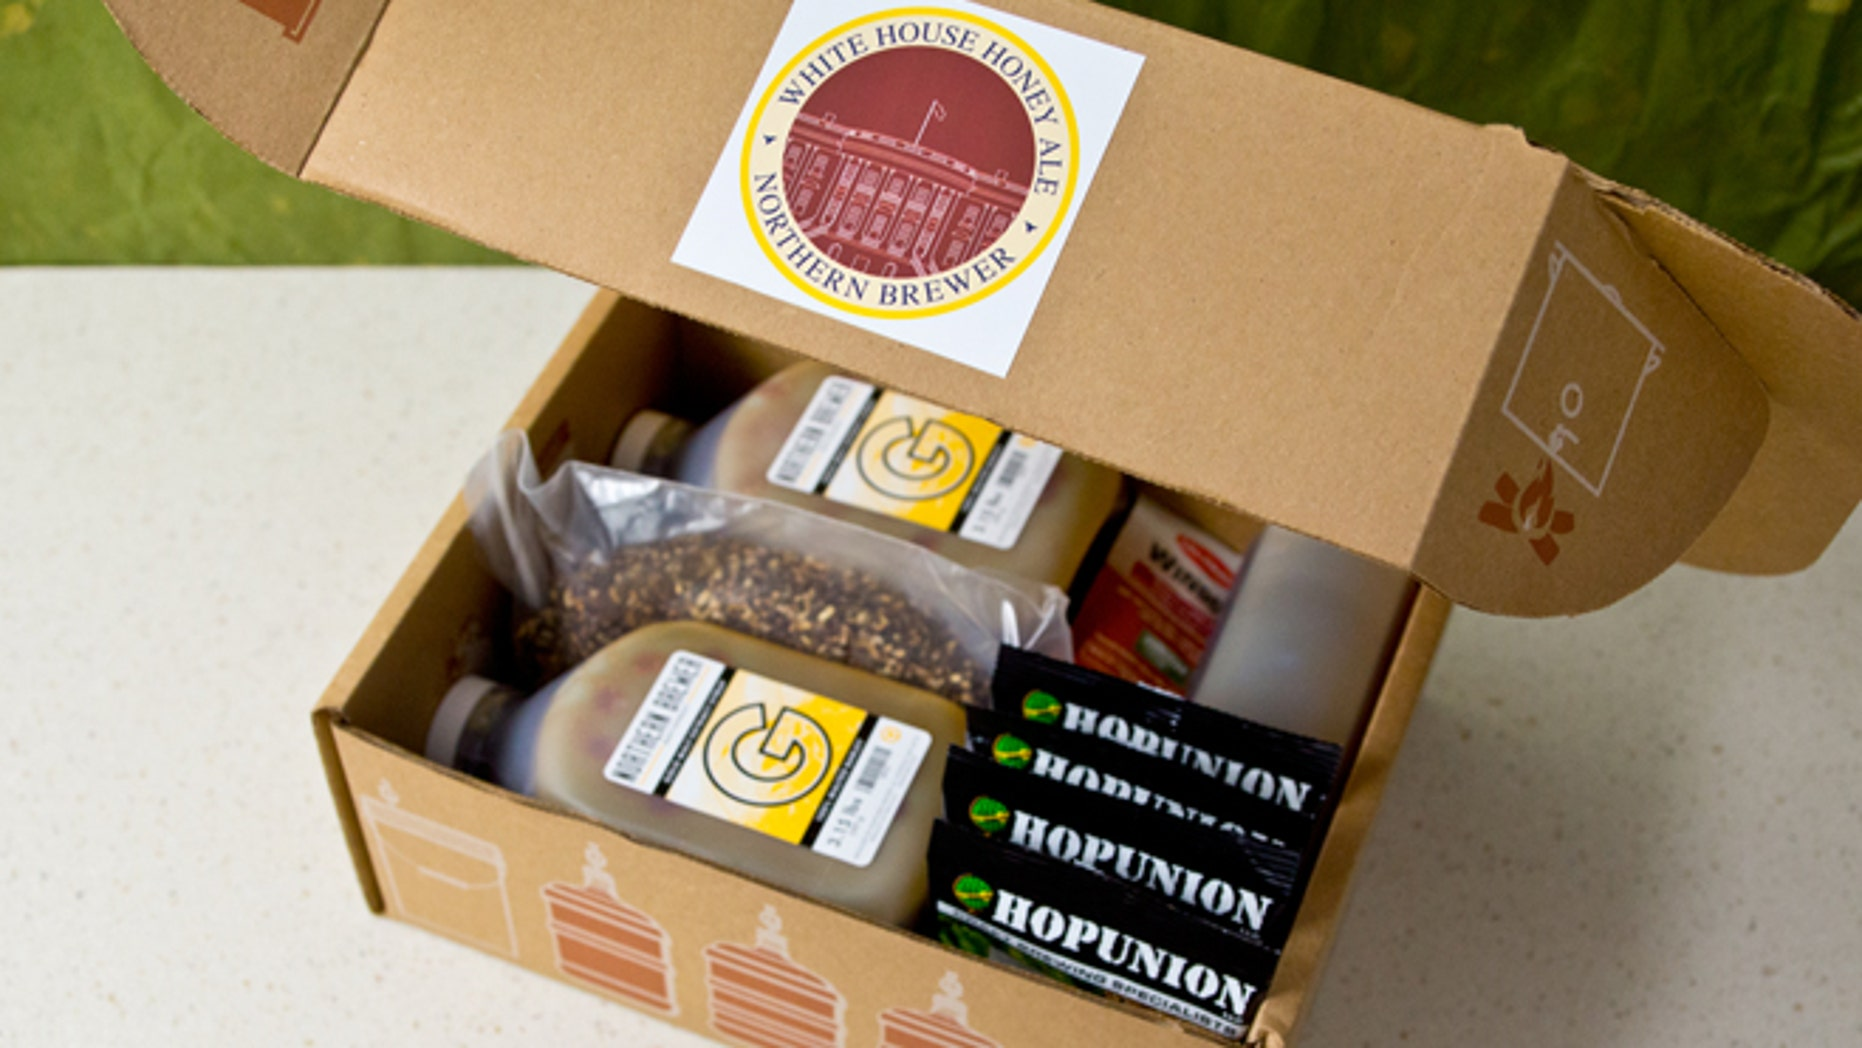 One of the White House homebrew kits sold by Northern Homebrew Supply.